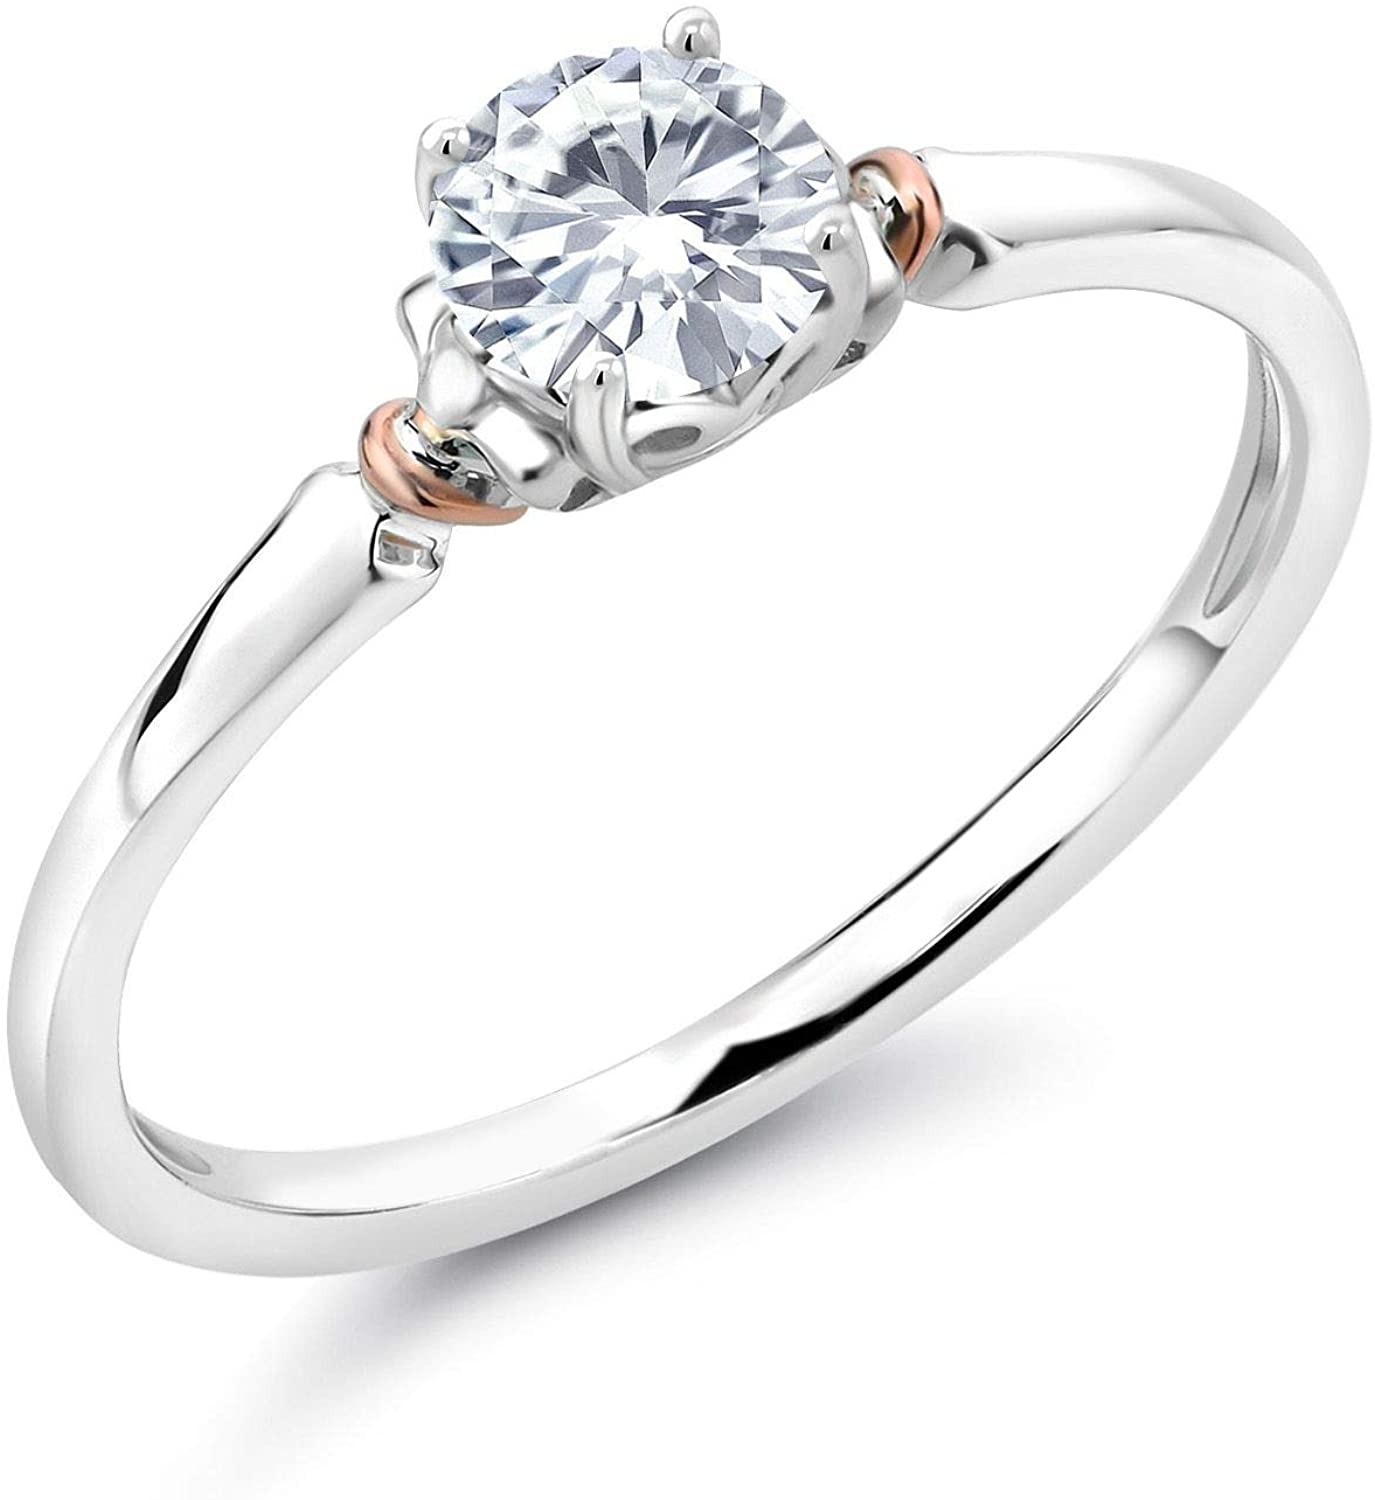 925 Sterling Silver and 10K Rose Gold Solitaire Engagement Ring Set Round Forever Brilliant Near Colorless (GHI) 0.50 ct (DEW) Created Moissanite from Charles & Colvard